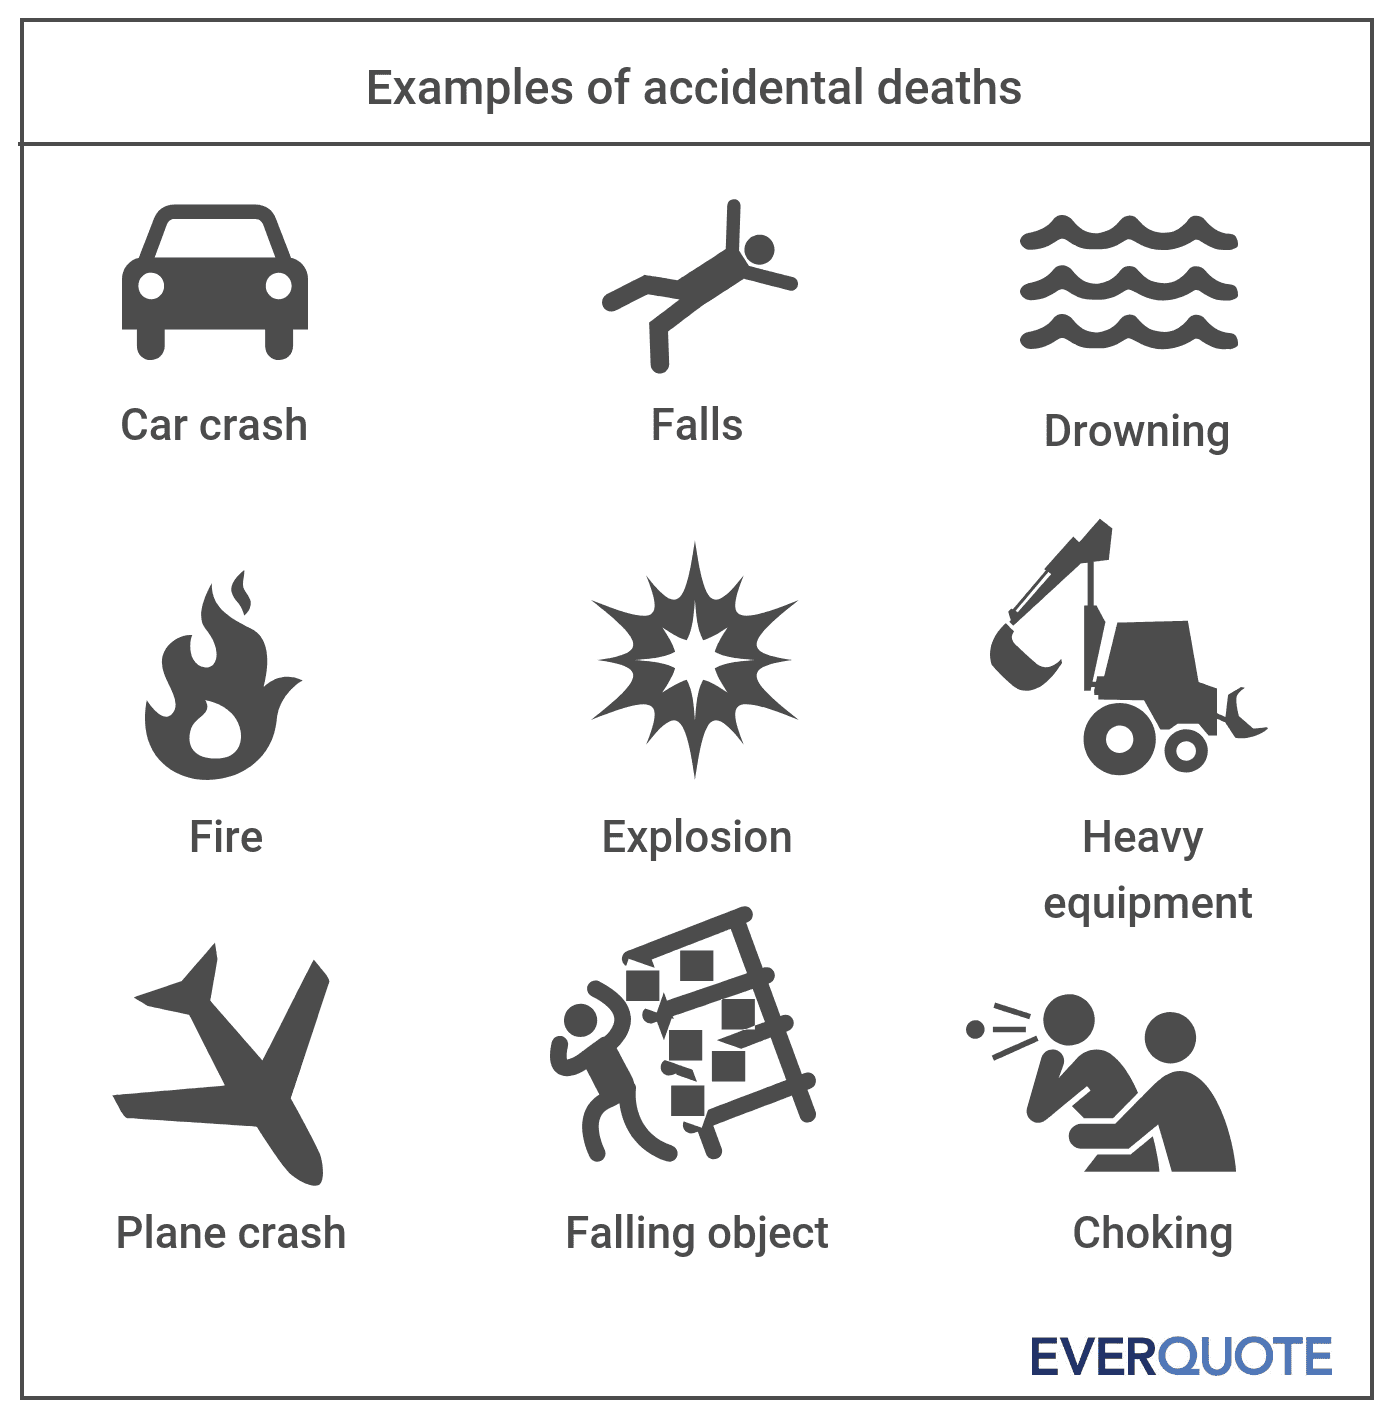 Examples of accidental death